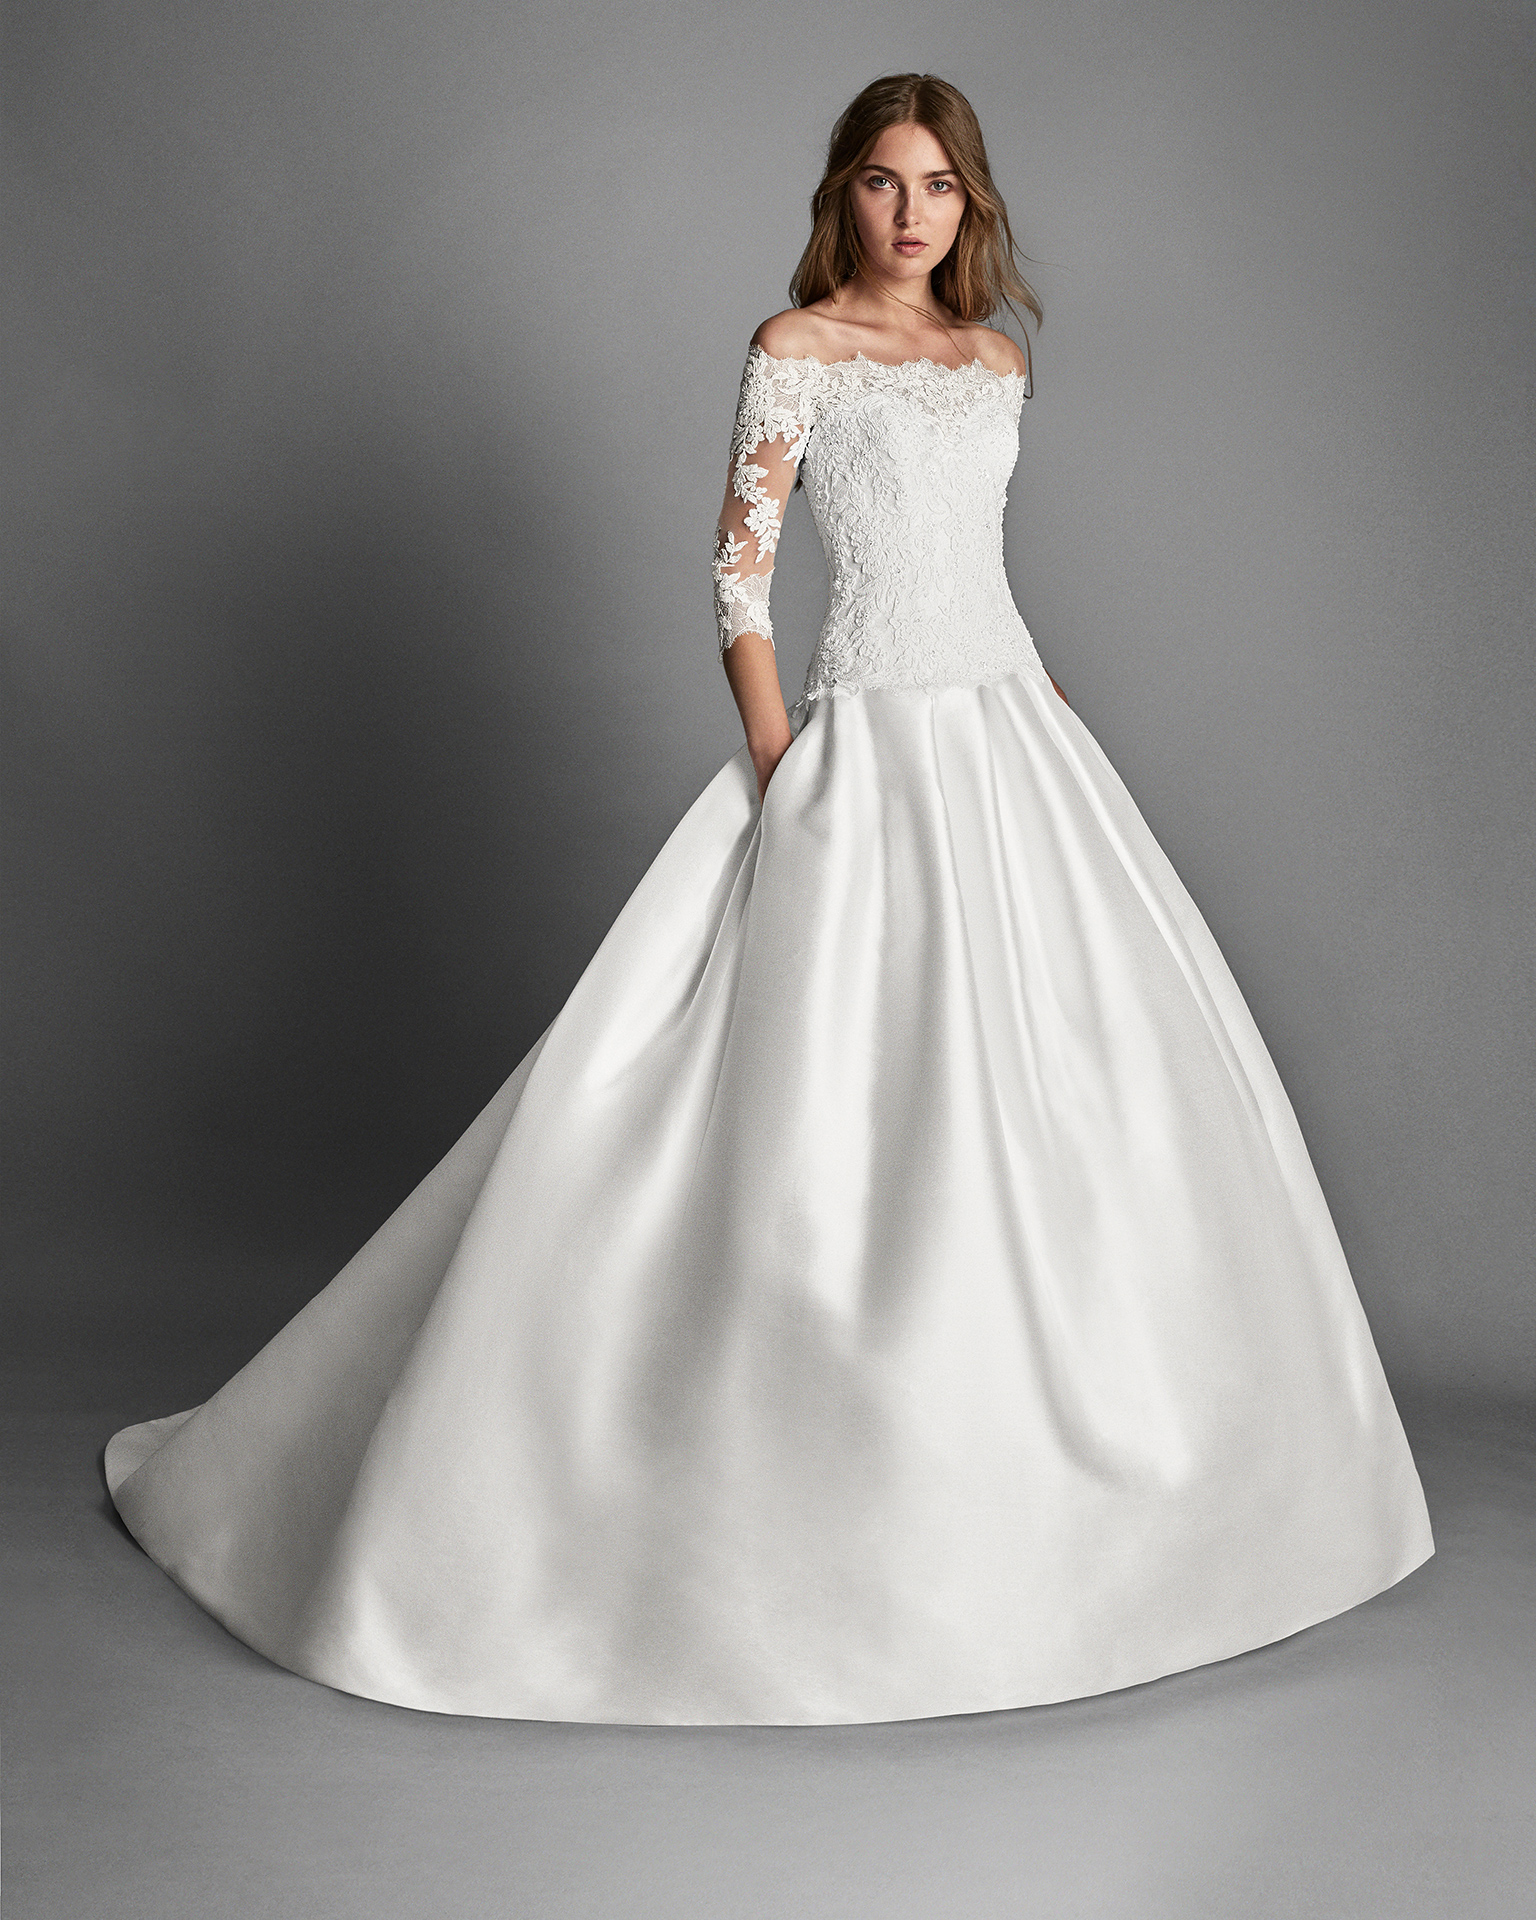 Classic-style beaded lace and mikado wedding dress with long sleeves and pockets, in natural.